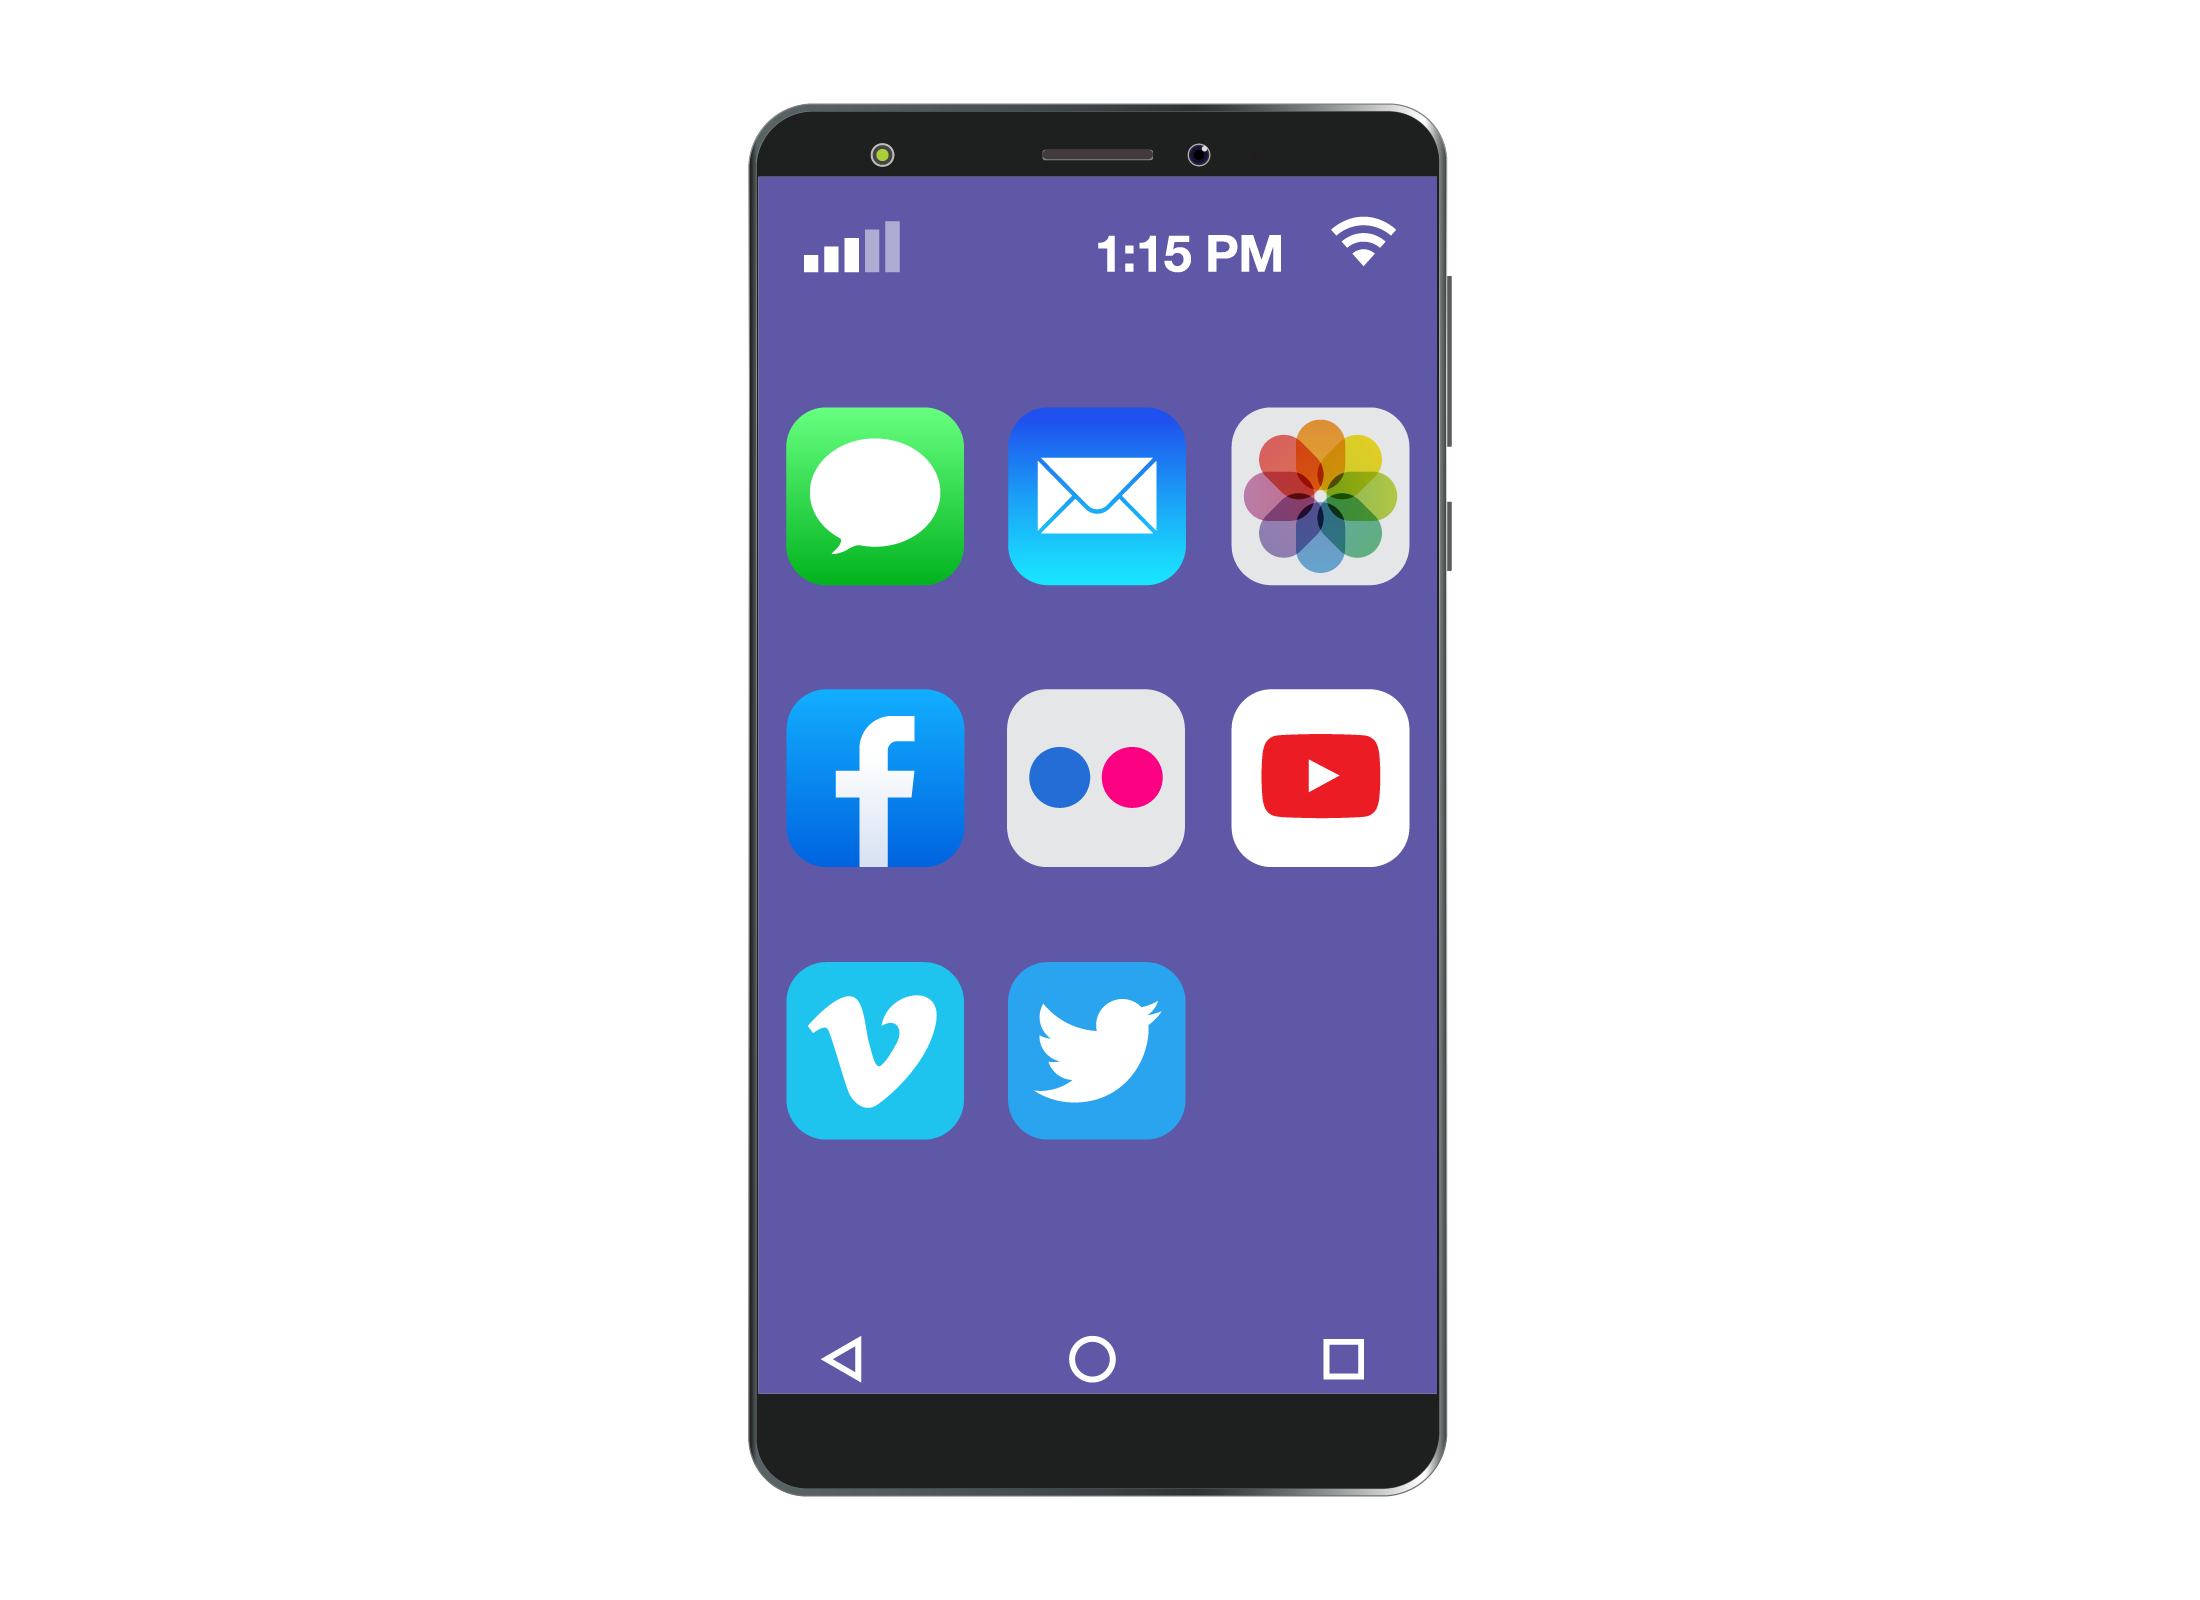 A typical smartphone displaying a selection of small icons known as apps